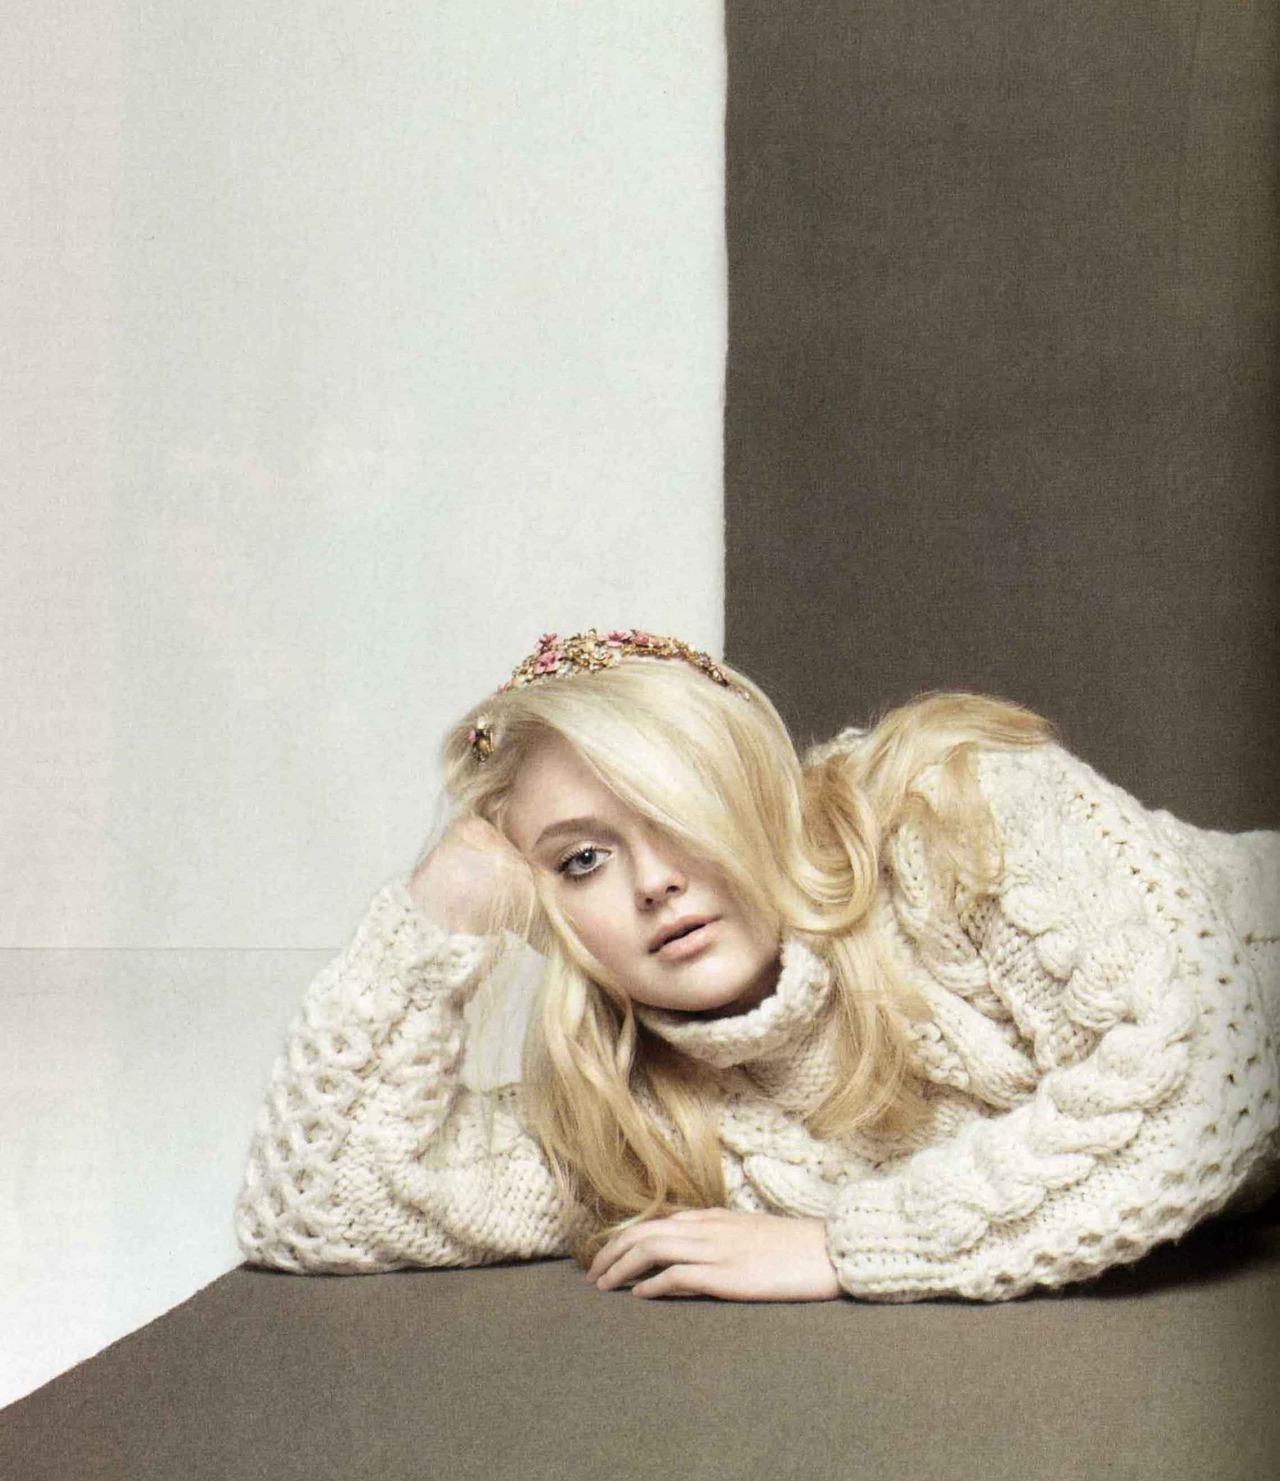 officialrodarte:  Dakota Fanning wears Rodarte's FW12 hand knit sweater in InStyle UK.